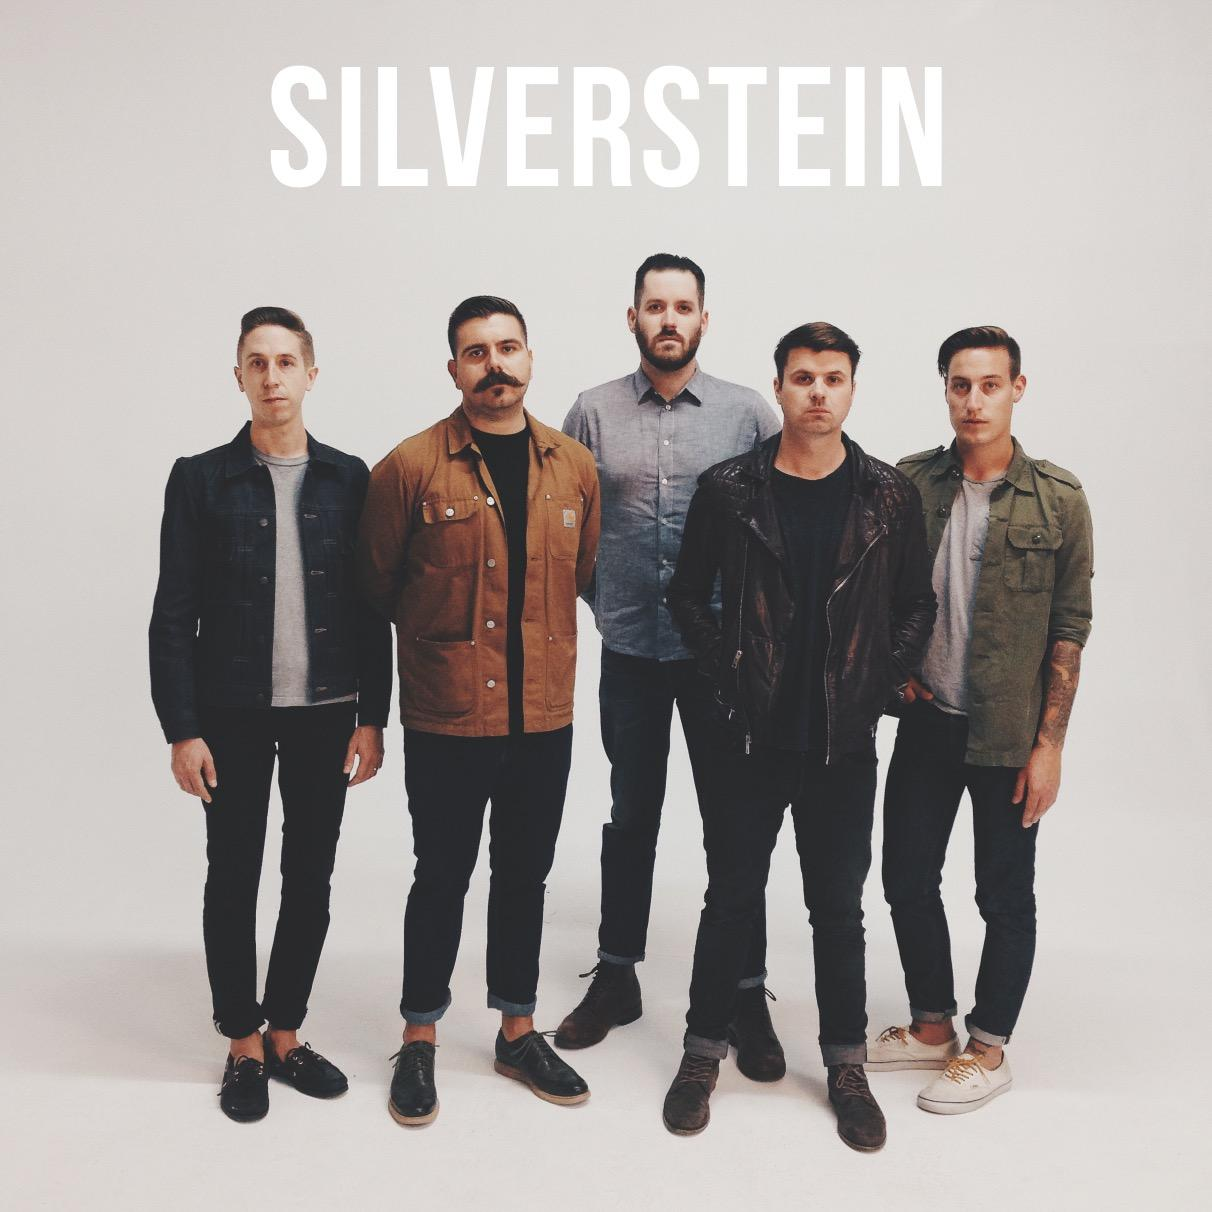 Silverstein Backgrounds on Wallpapers Vista